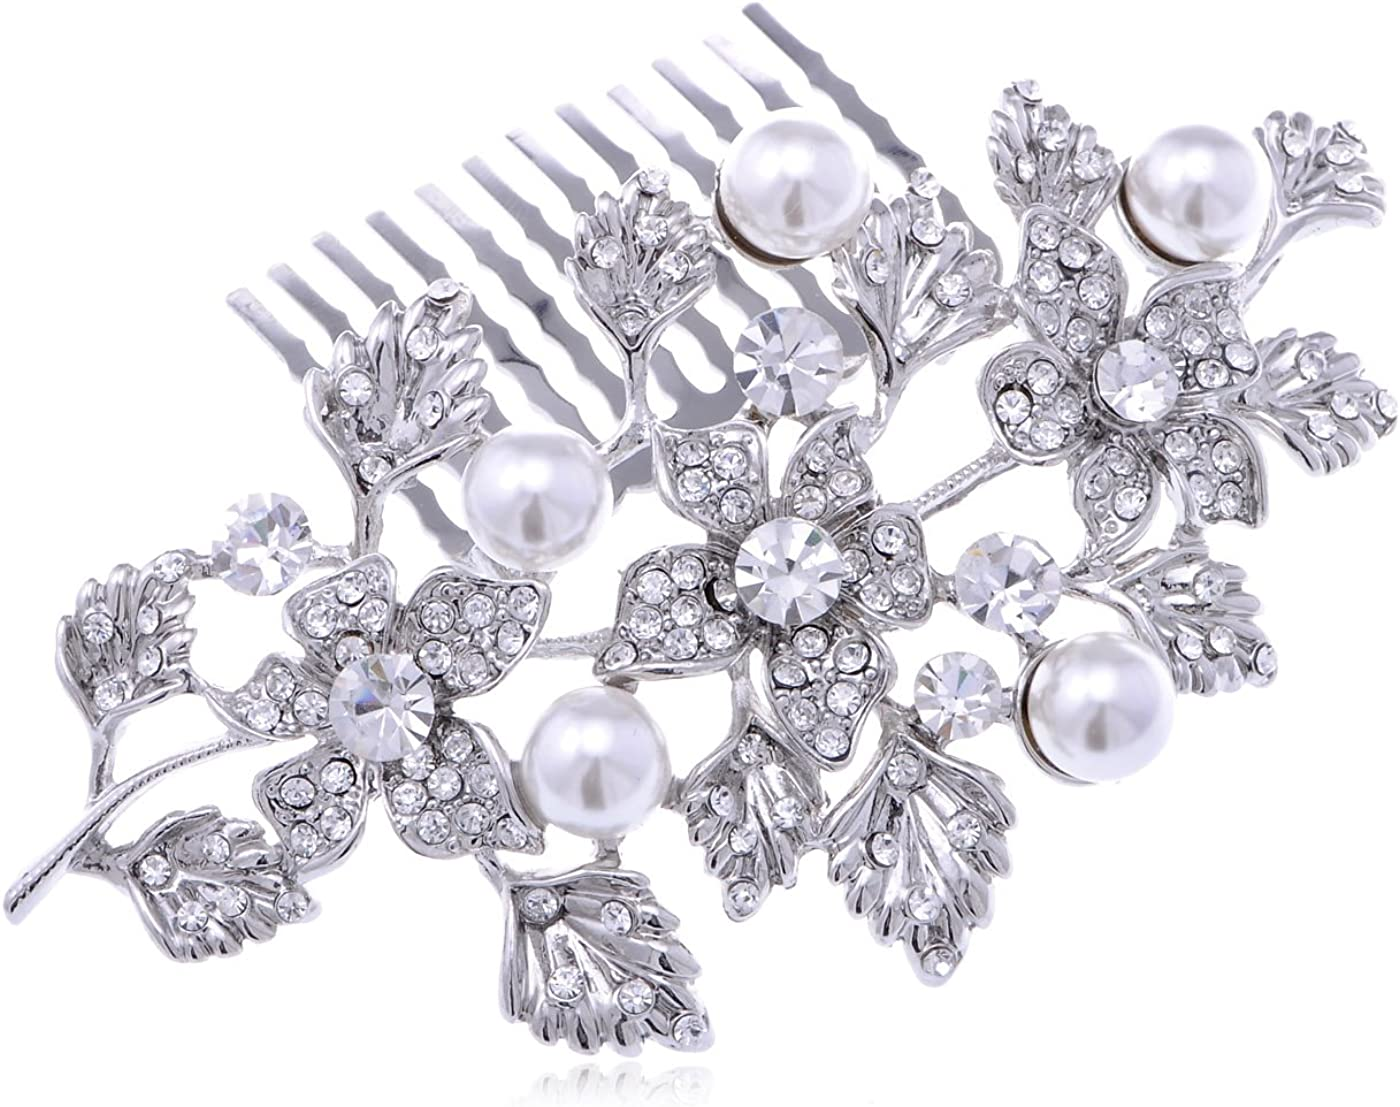 Alilang Silvery Tone Rhinestone Flowers Vines Leaves F High quality new Time sale Encrusted